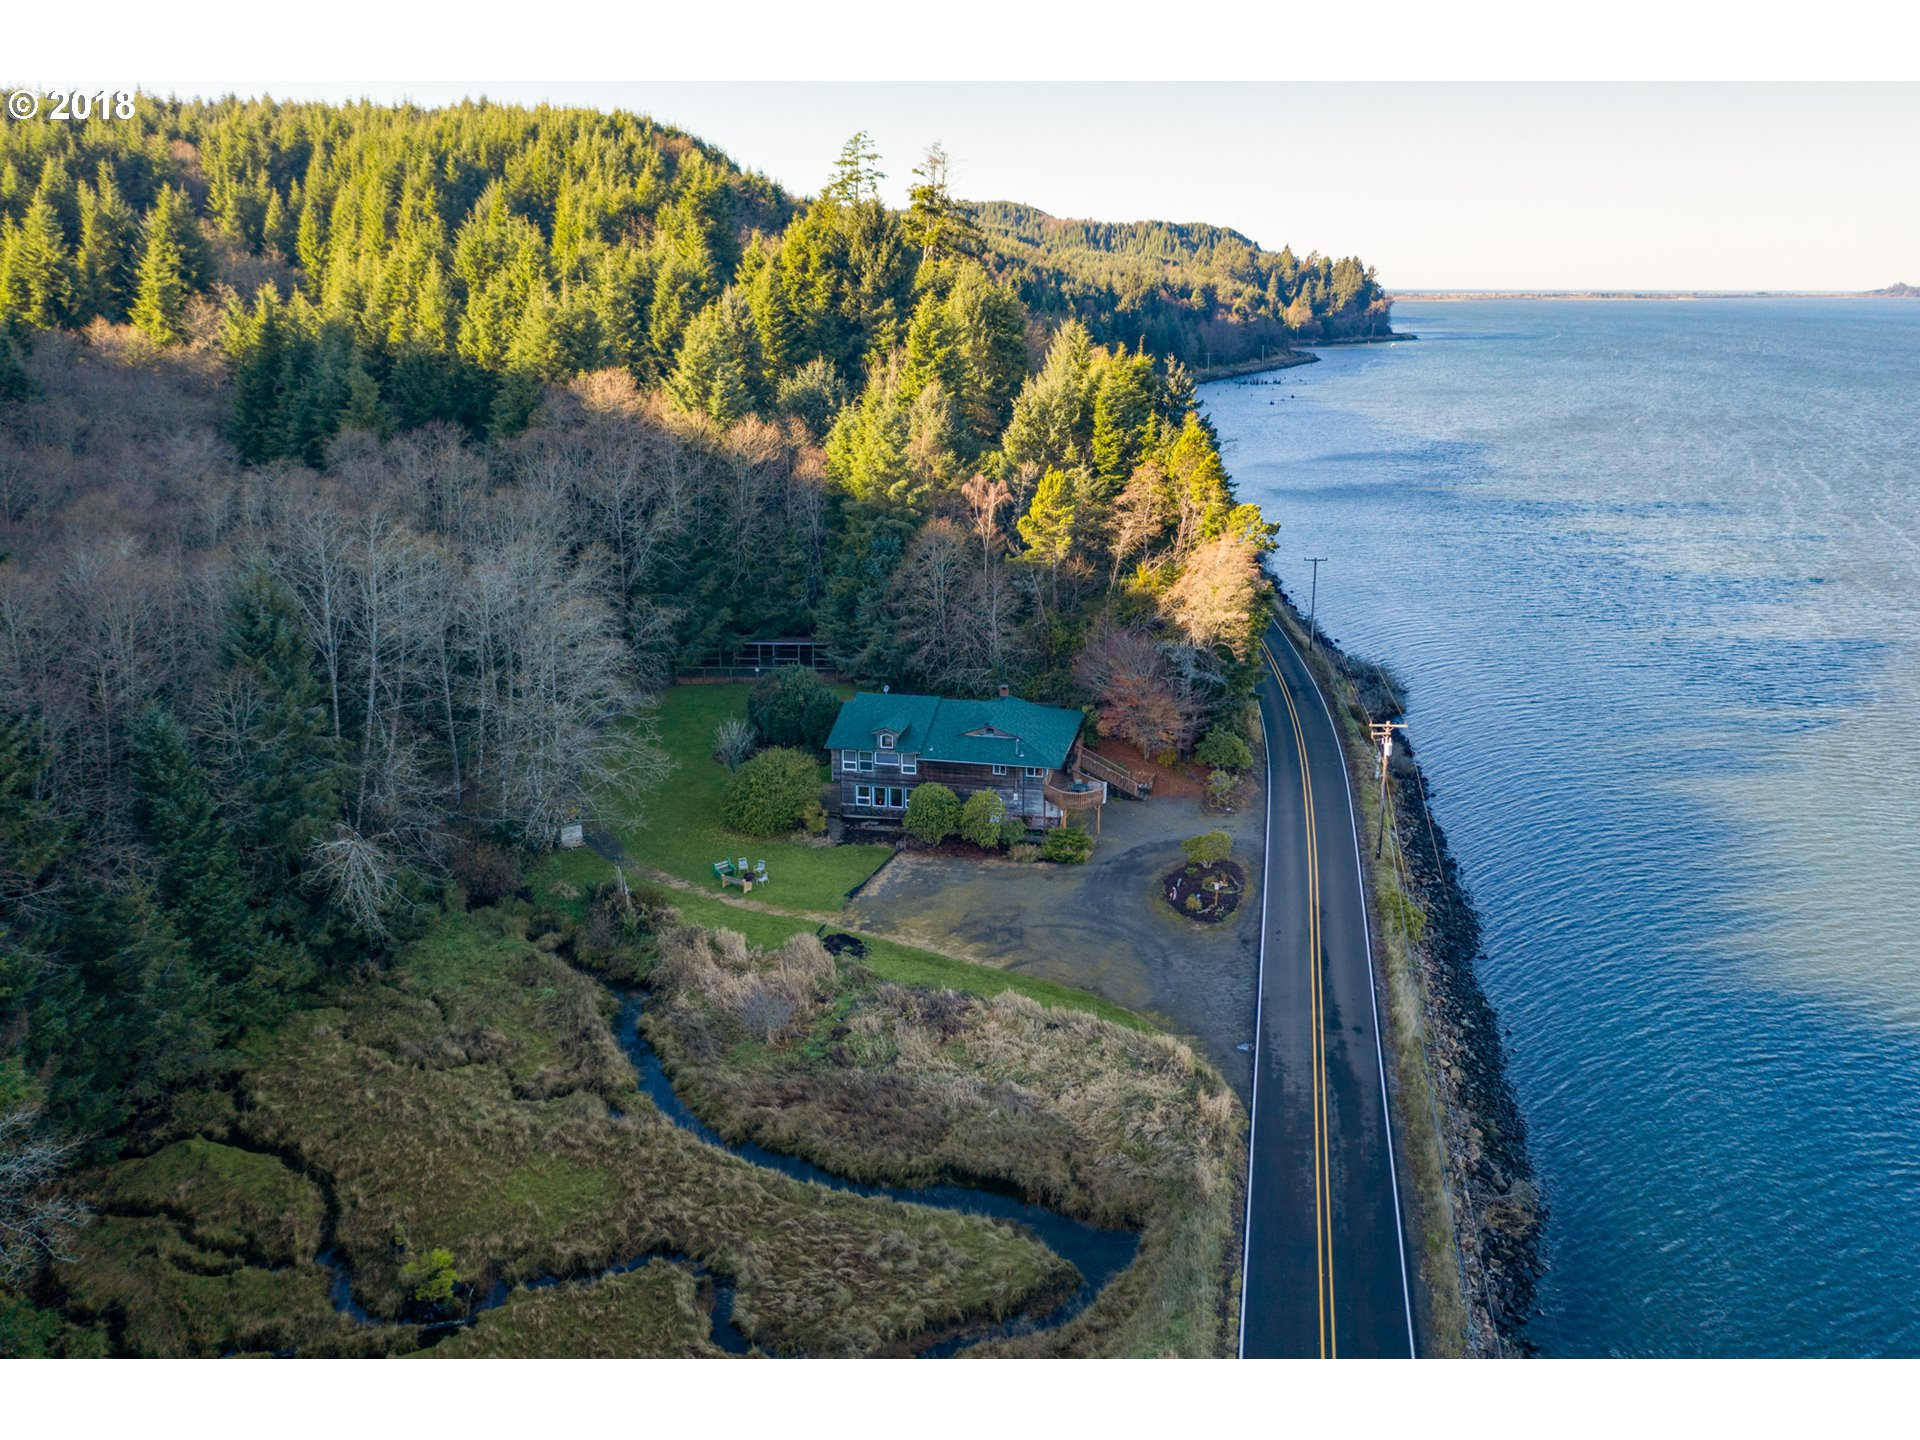 3278 sq. ft 4 bedrooms 3 bathrooms  House For Sale,Tillamook, OR